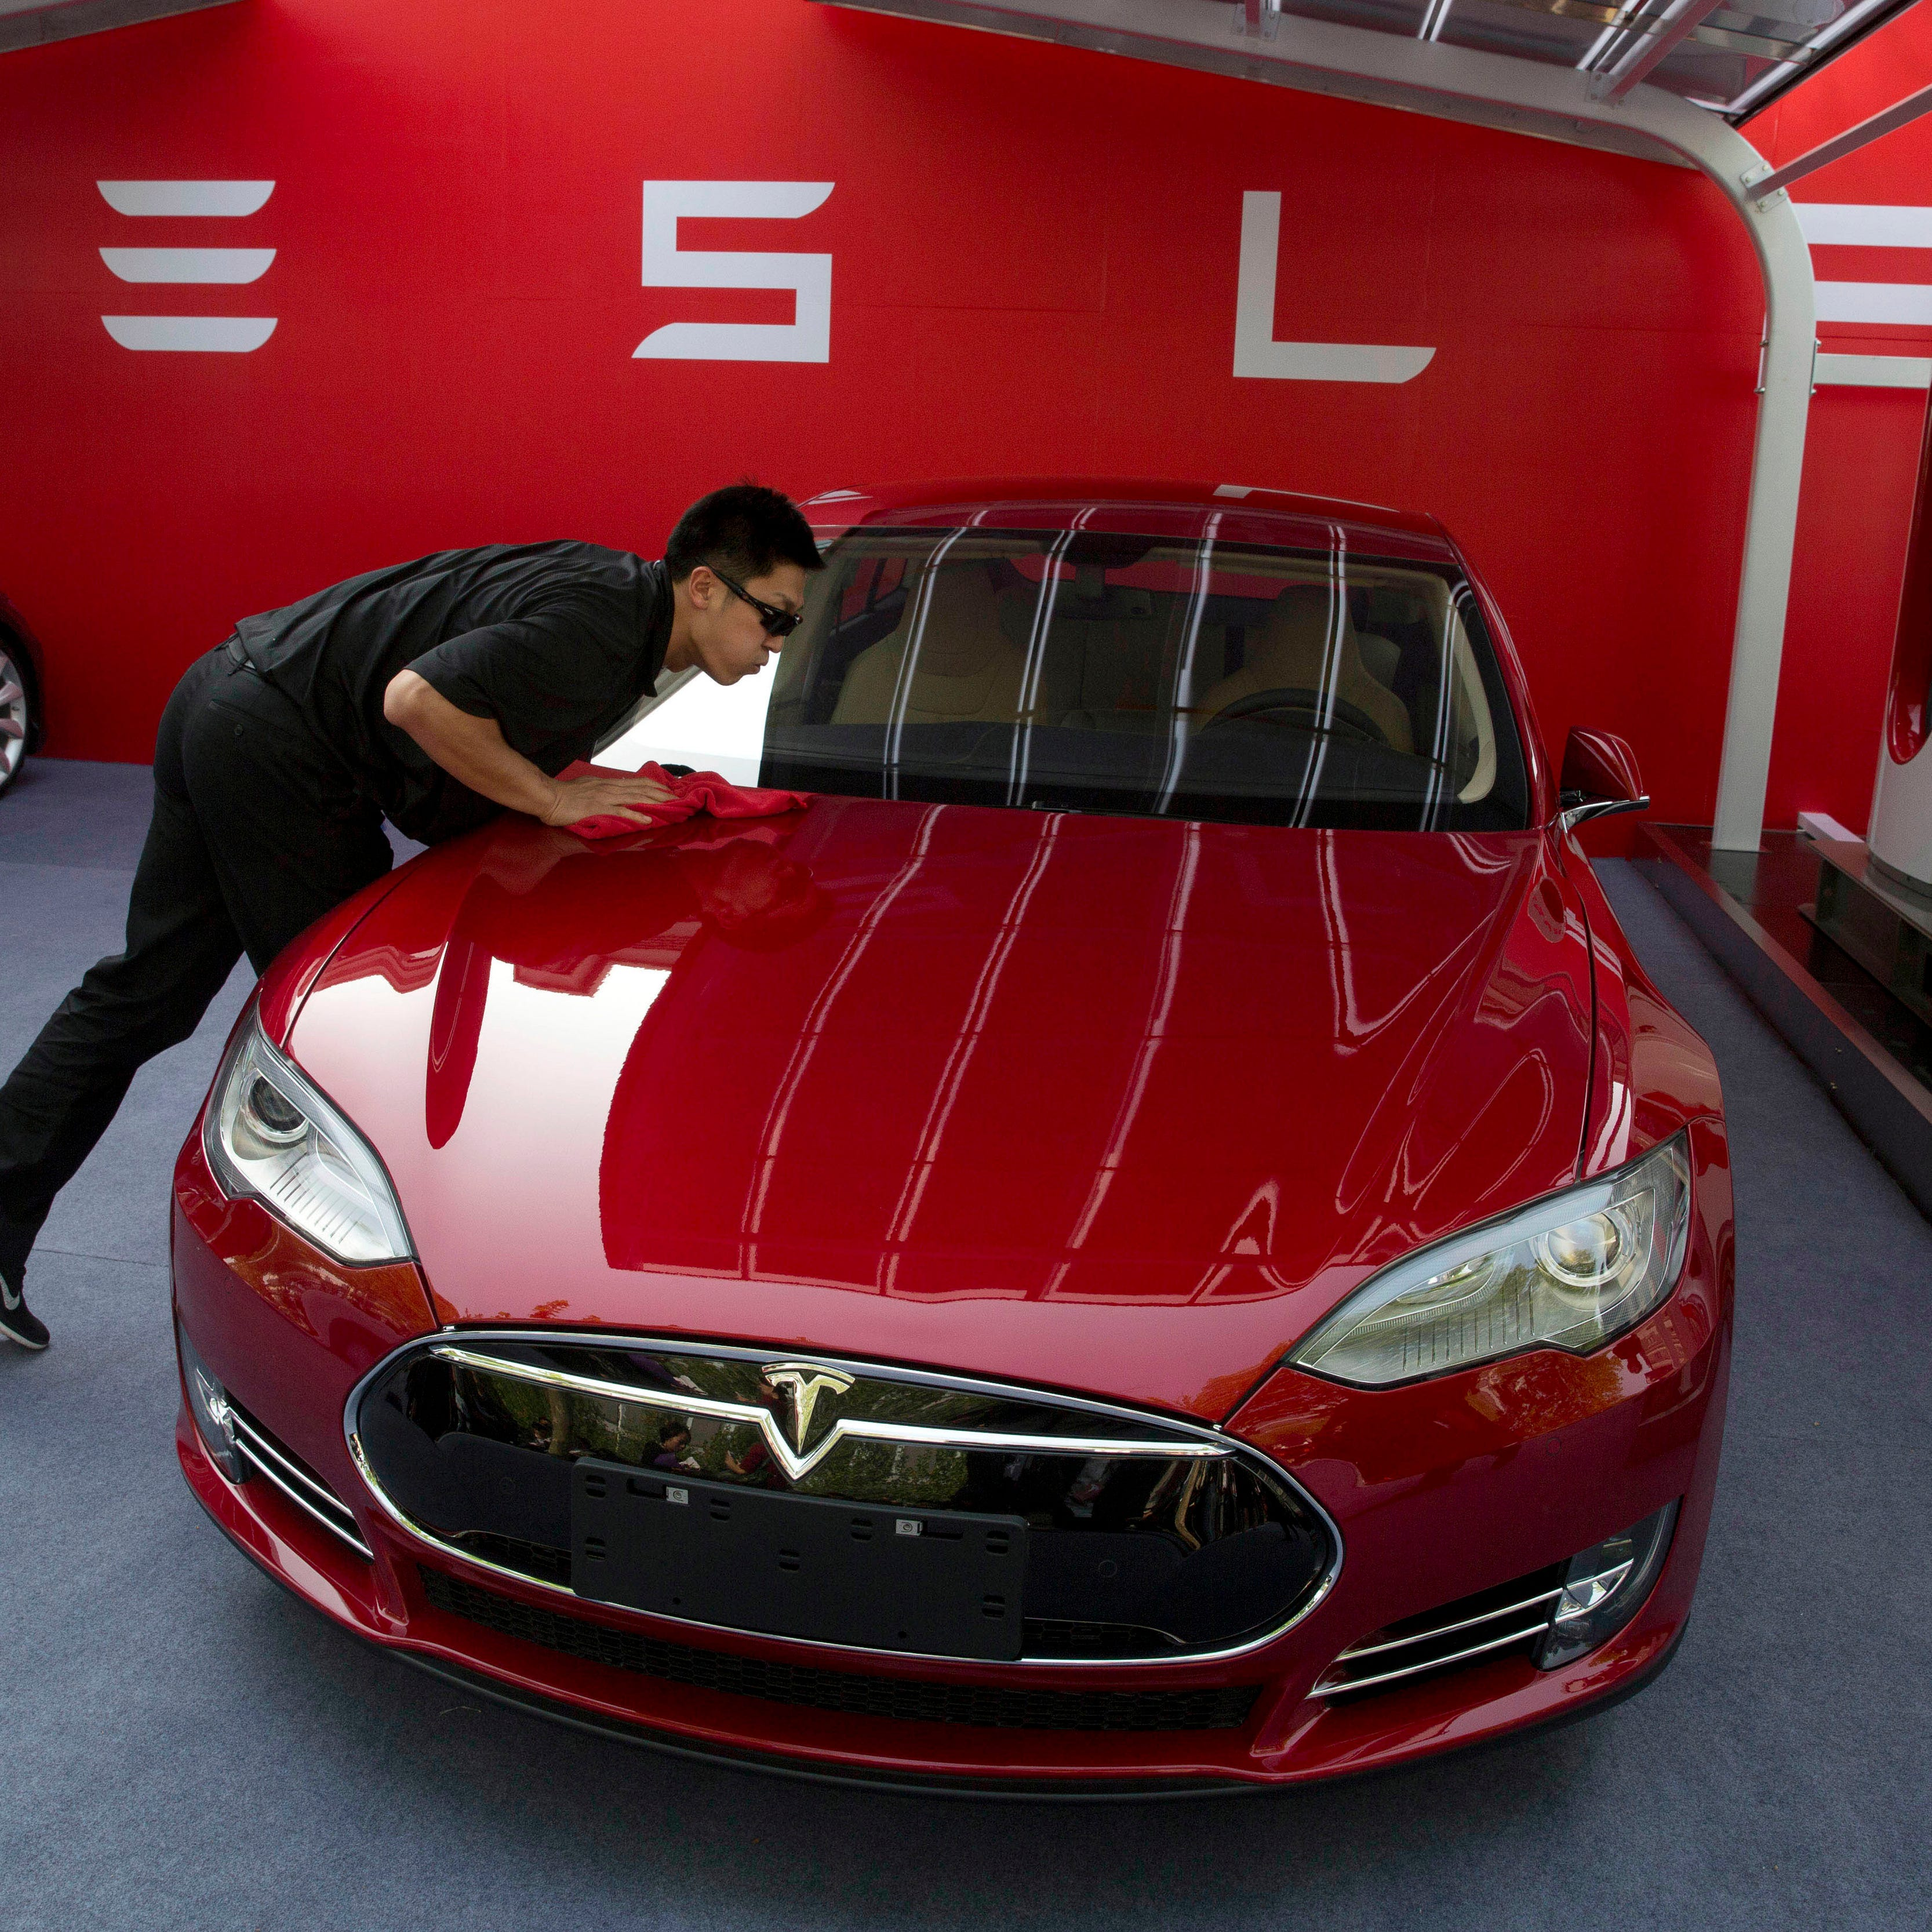 Tesla's rushed earnings could bring profit, company still faces uphill battle